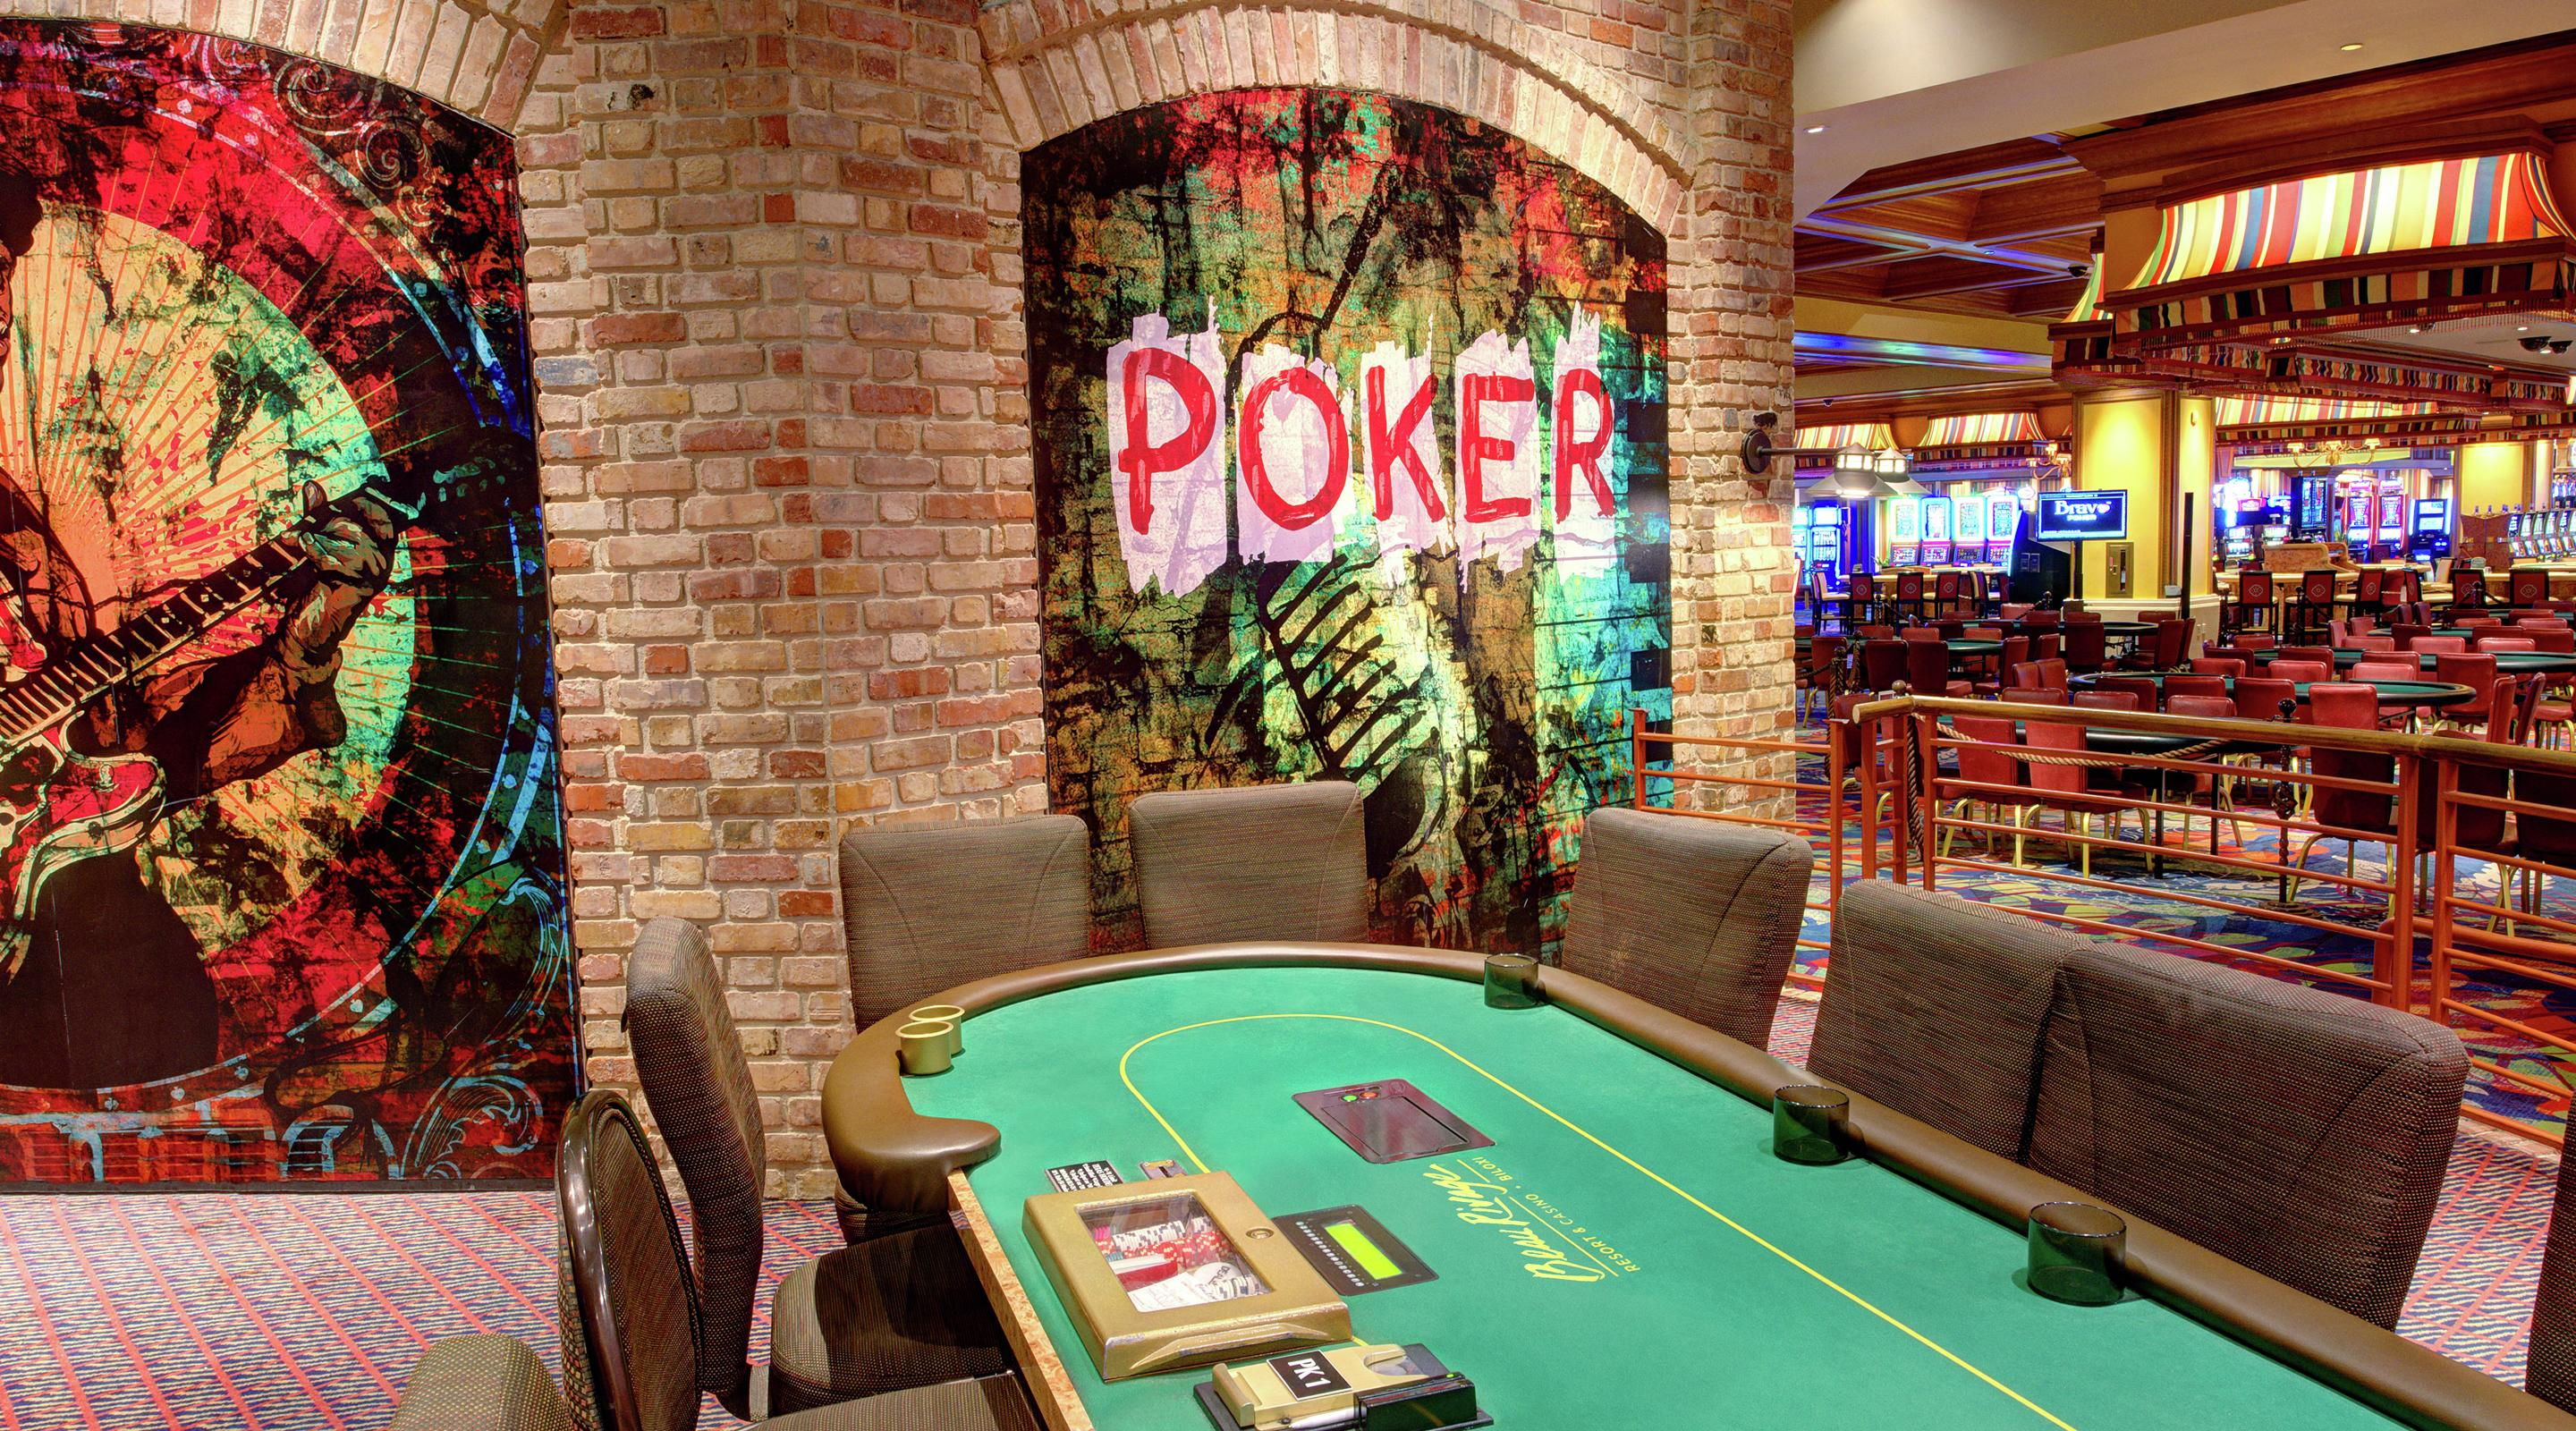 Grand Villa Casino Poker Room